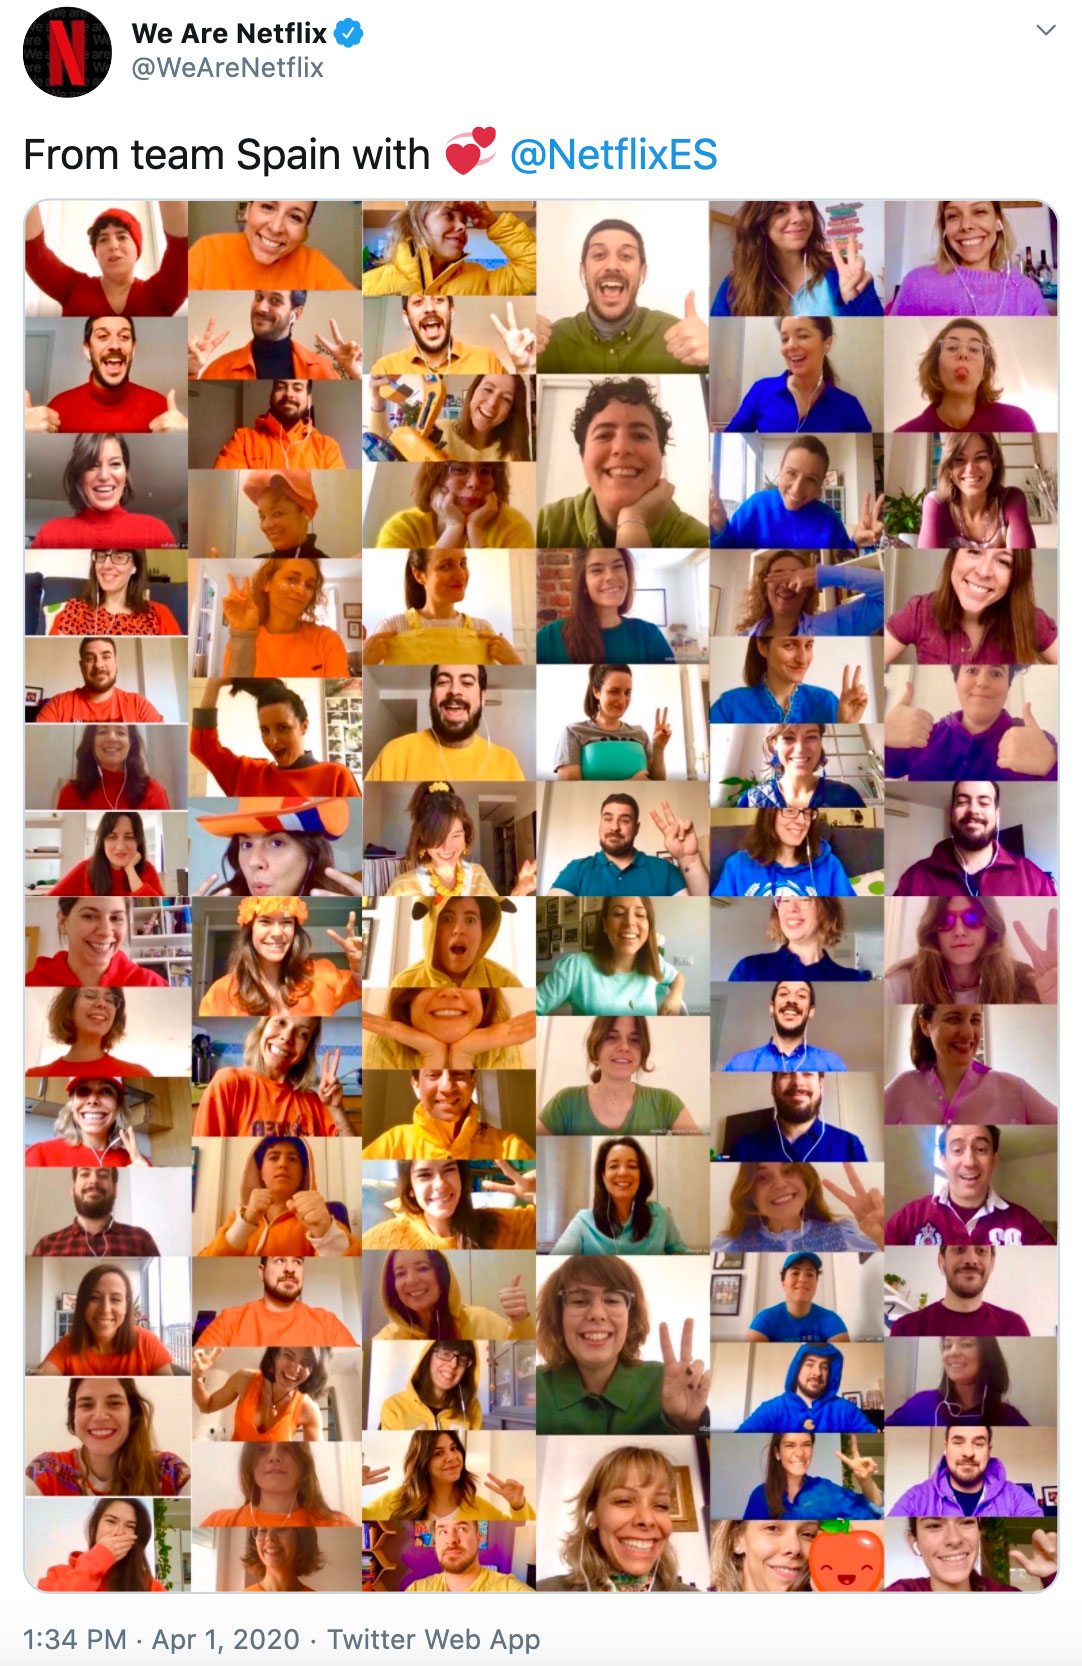 Caption: from team Spain with love. Image: Team members wearing all different colors in order to look like a rainbow.